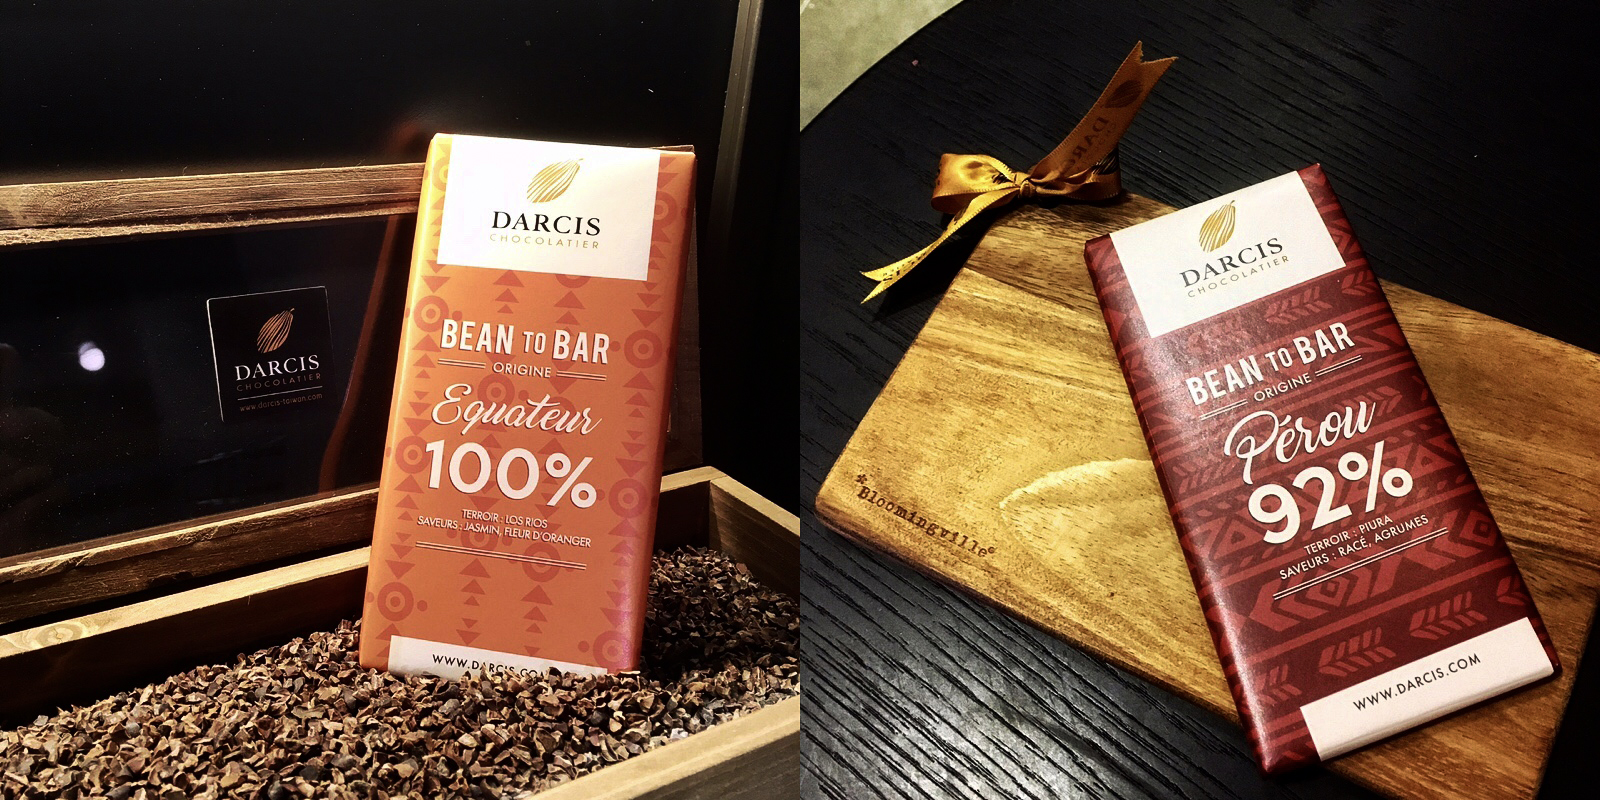 Would You Magazine x Darcis 抽獎活動 - 厄瓜多爾100%Bean To Bar*5名秘魯92%Bean To Bar*5名